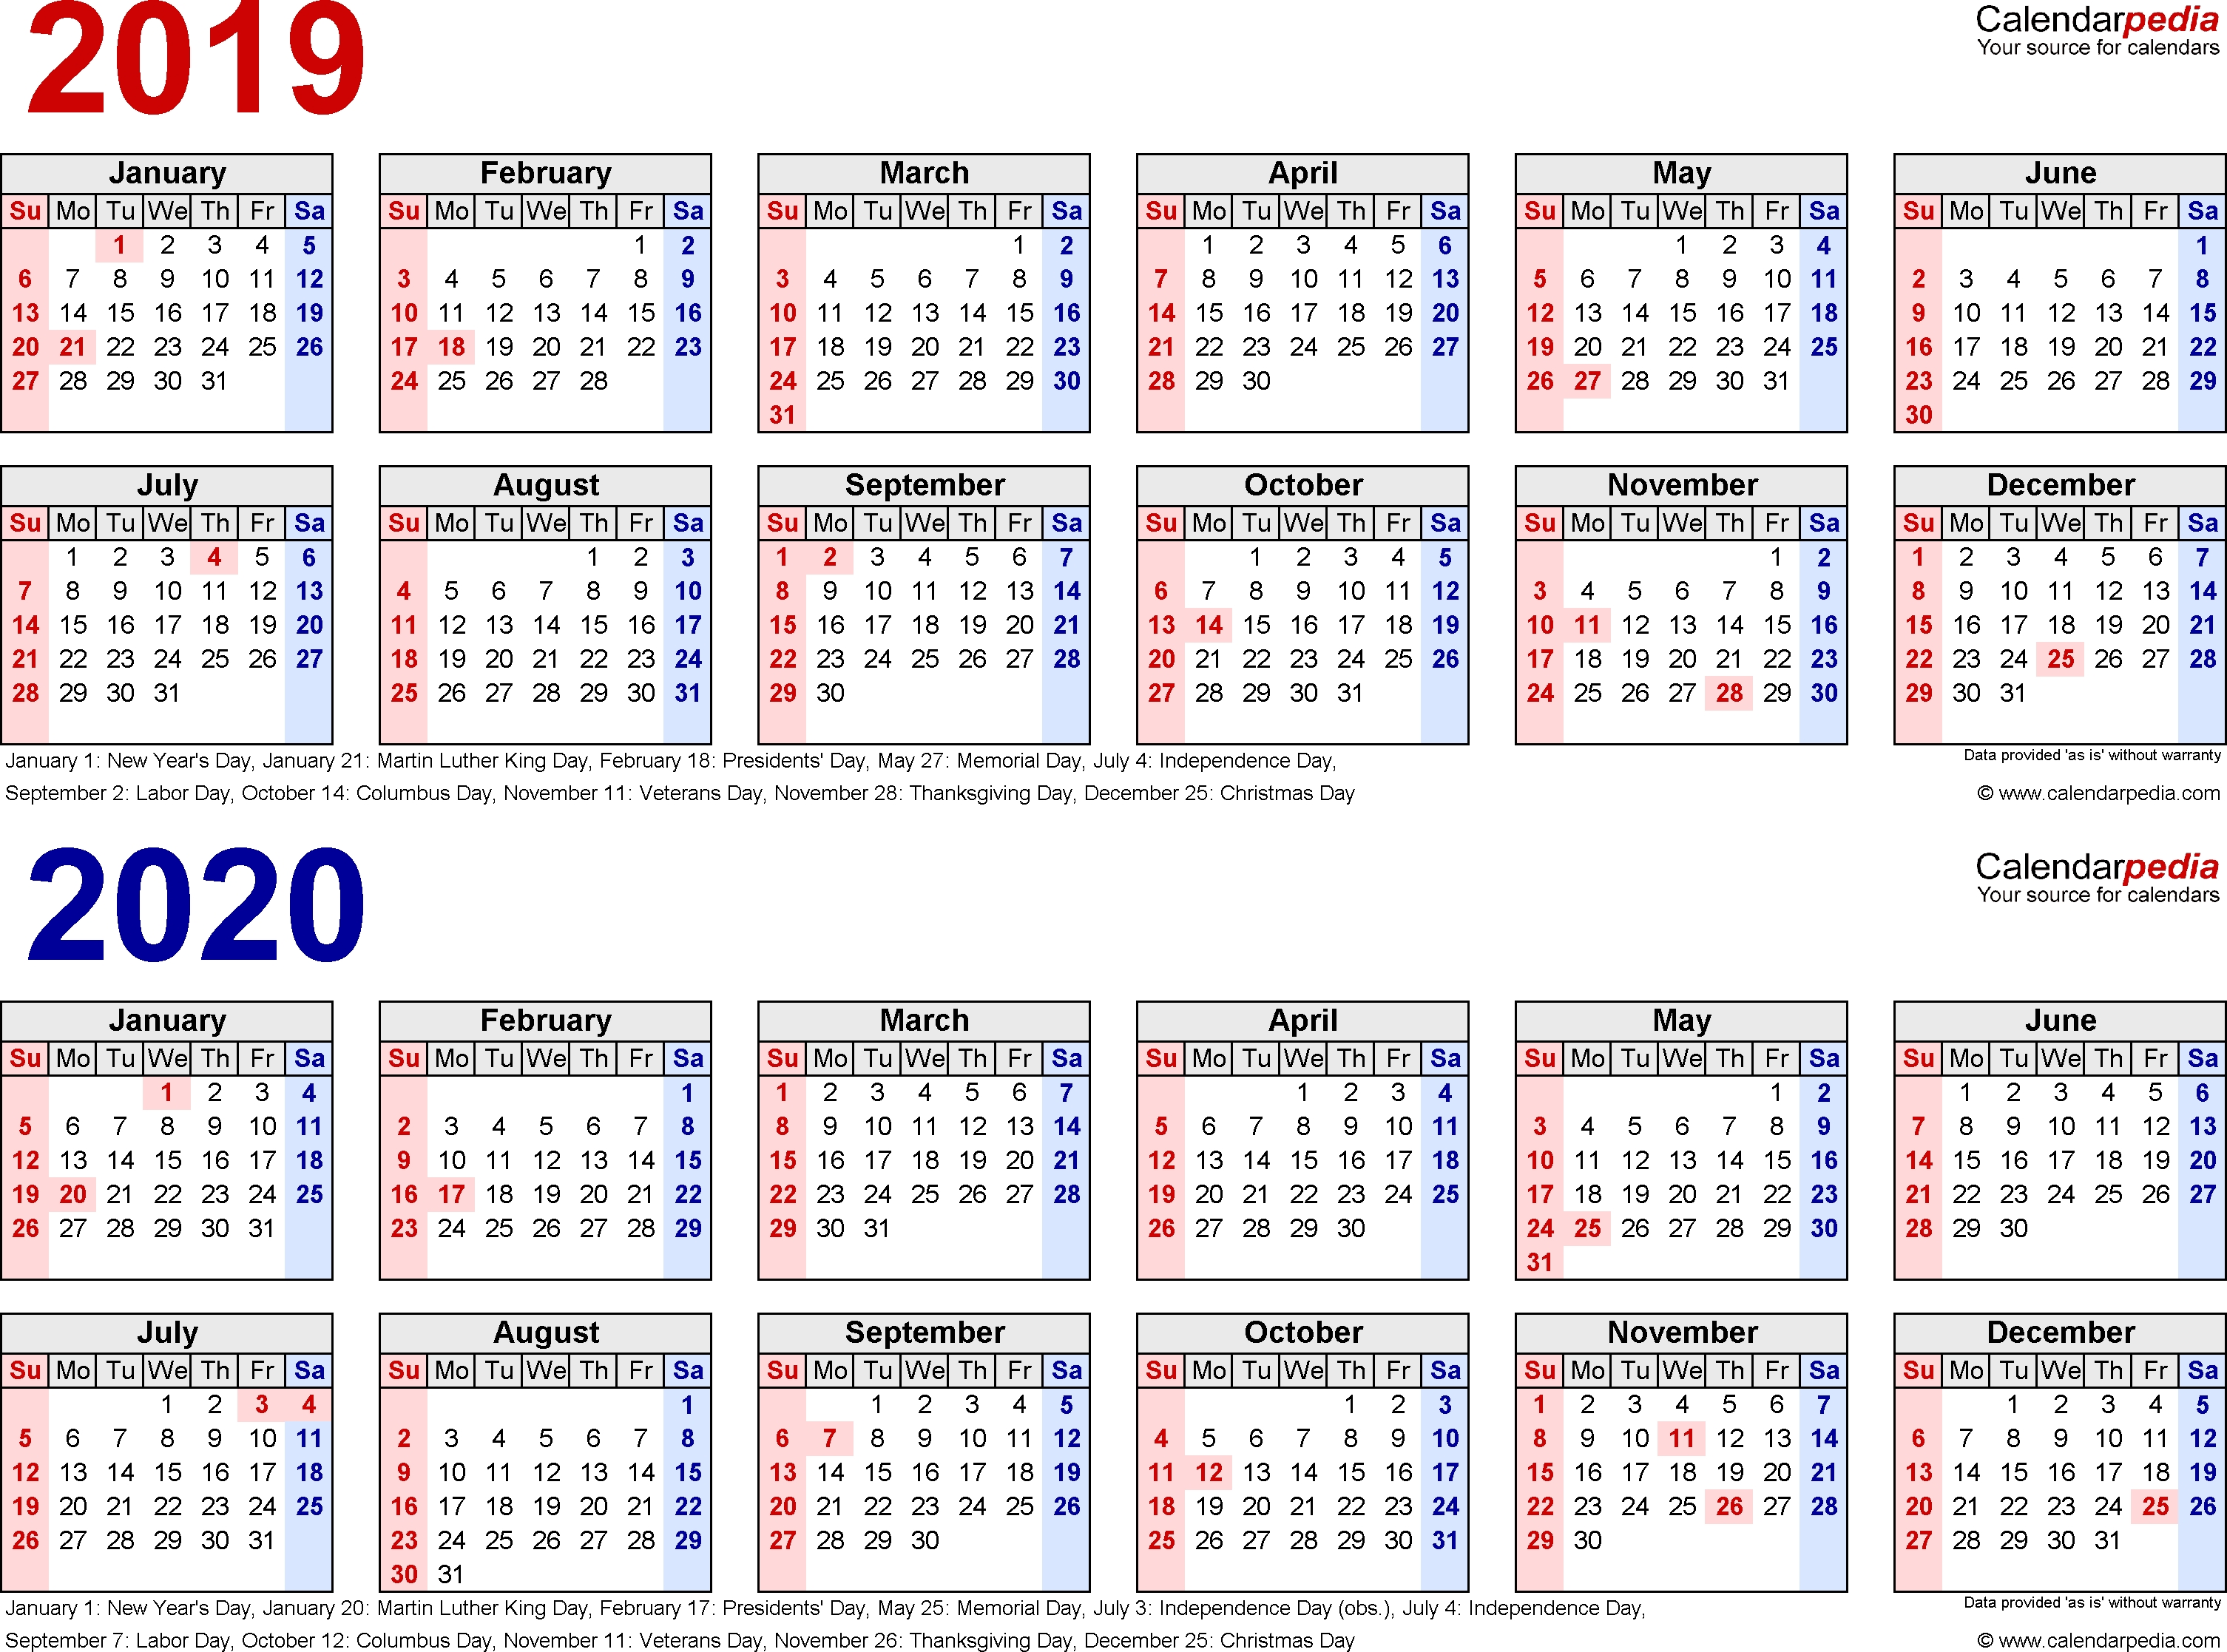 2019-2020 Calendar - Free Printable Two-Year Word Calendars throughout Microsoft Word Calendars 2019-2020